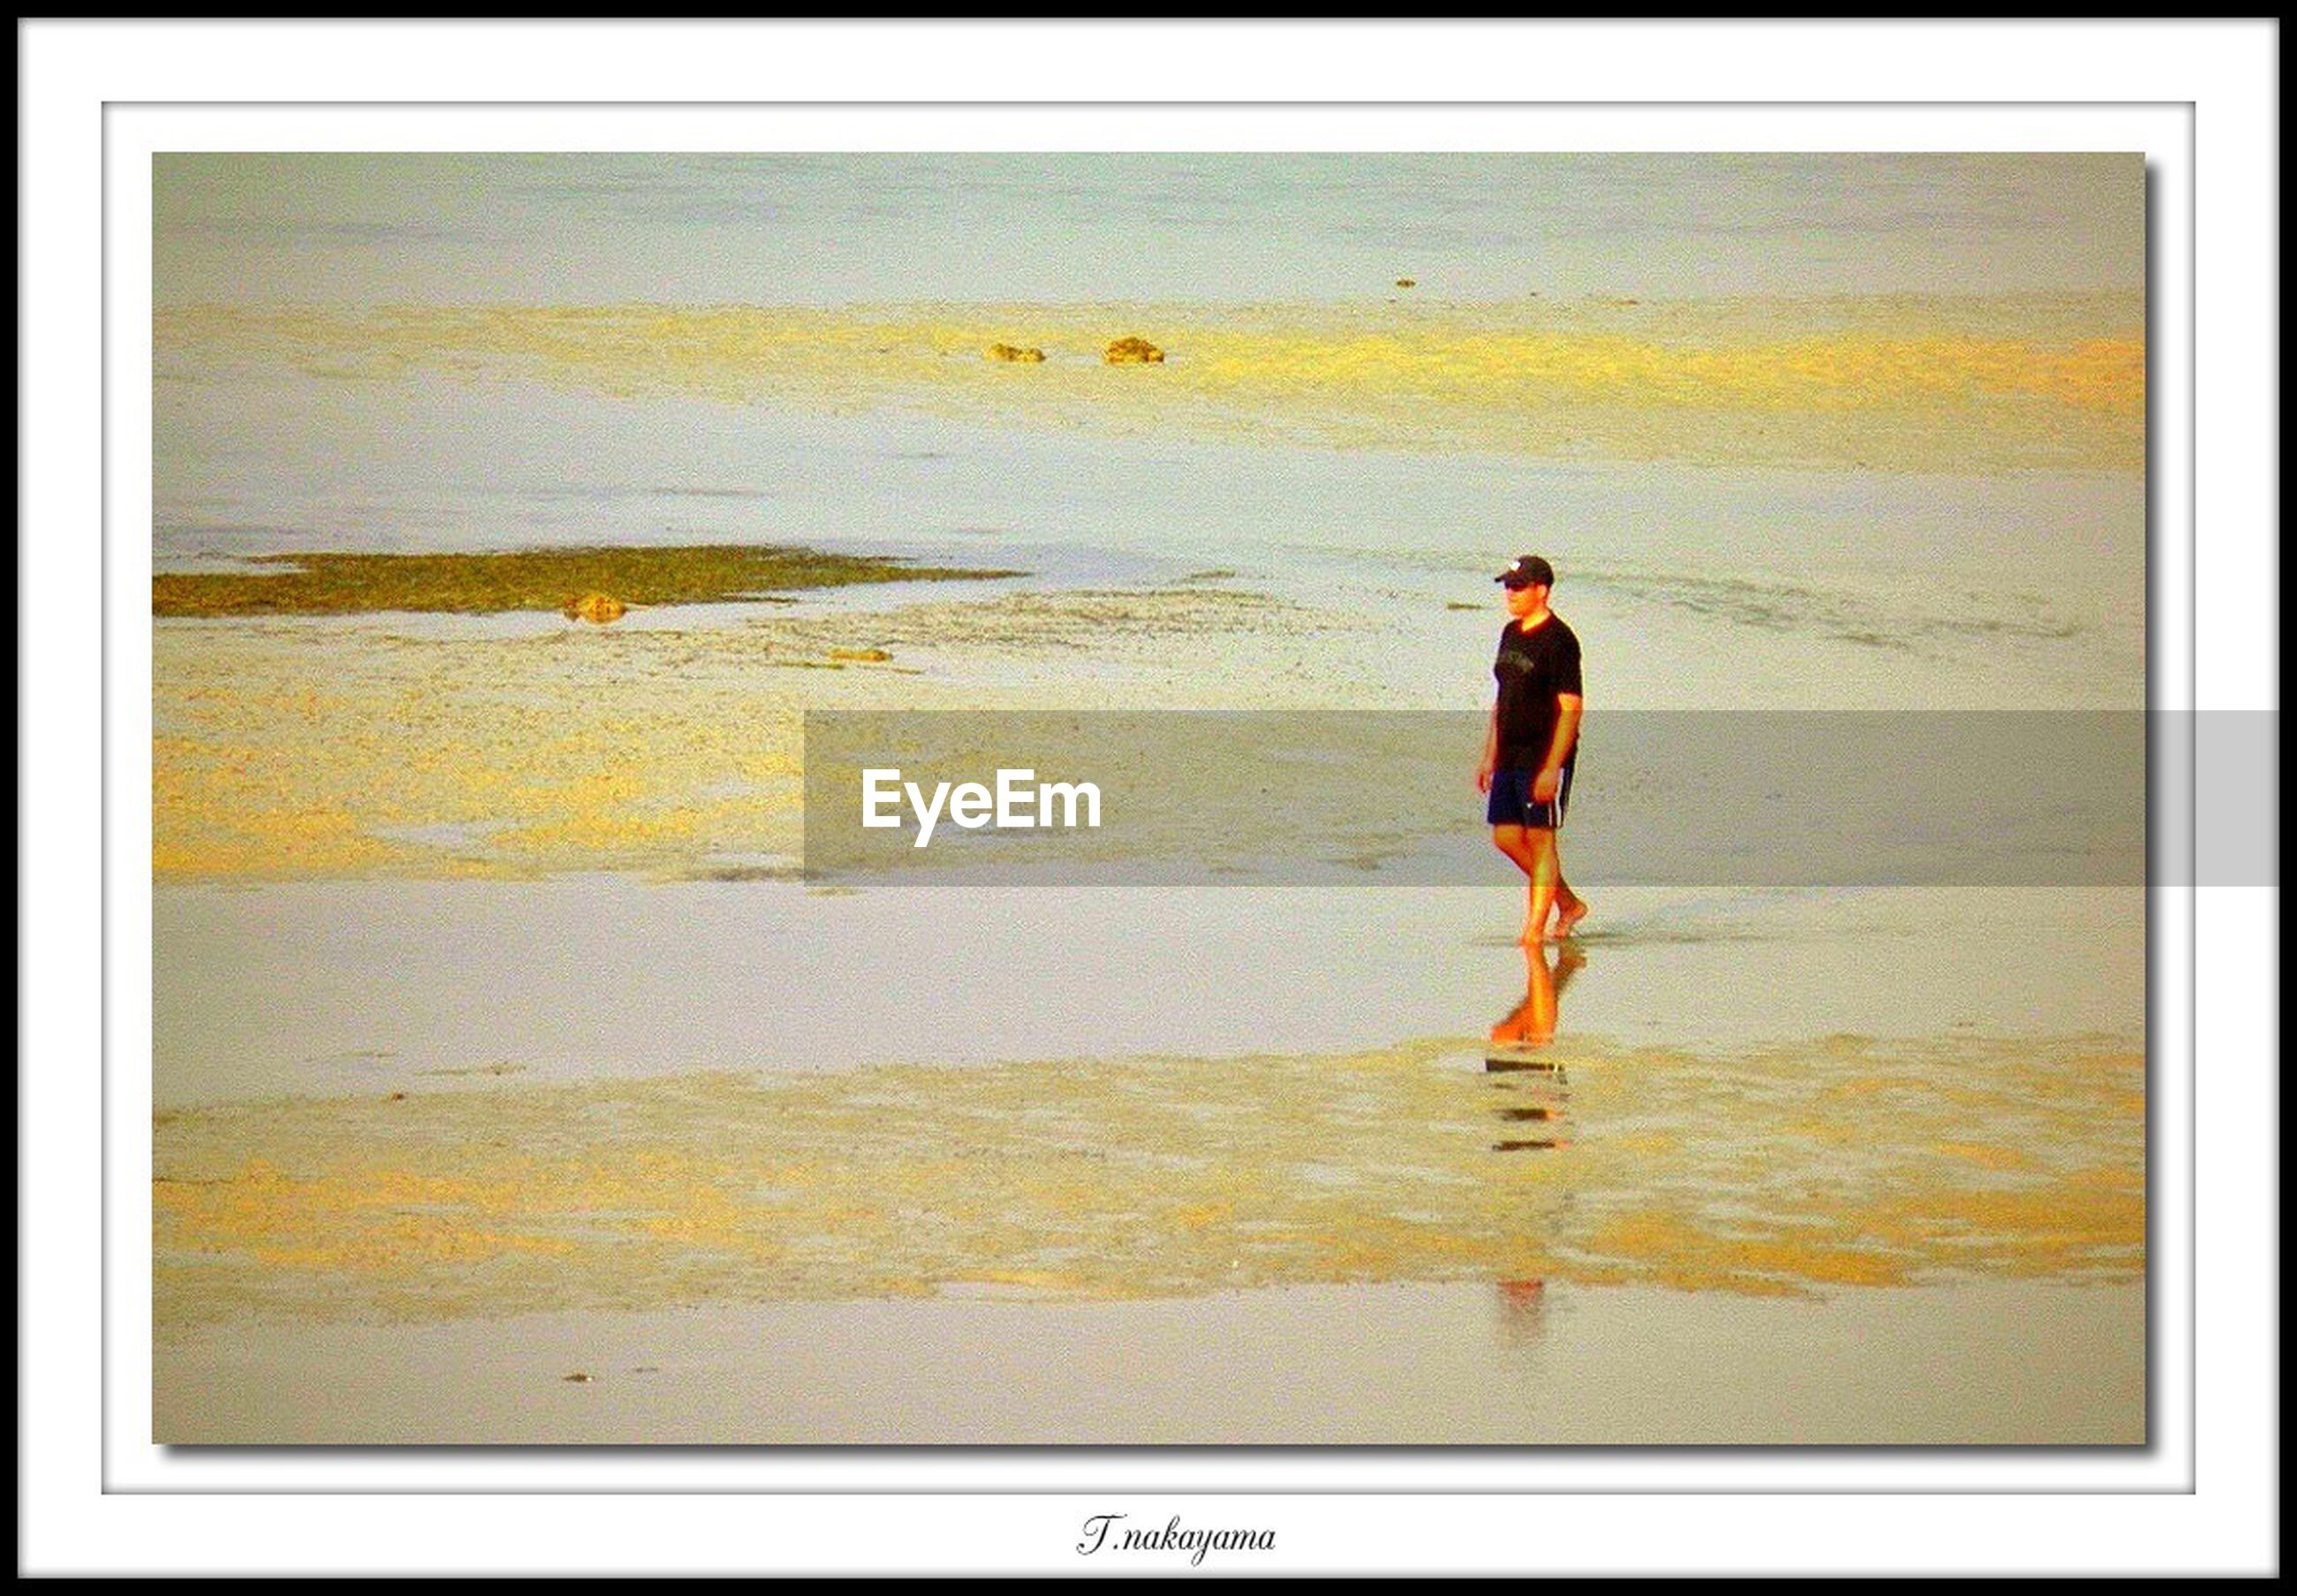 water, transfer print, lifestyles, full length, auto post production filter, leisure activity, standing, rear view, sea, casual clothing, beach, men, walking, shore, person, outdoors, reflection, horizon over water